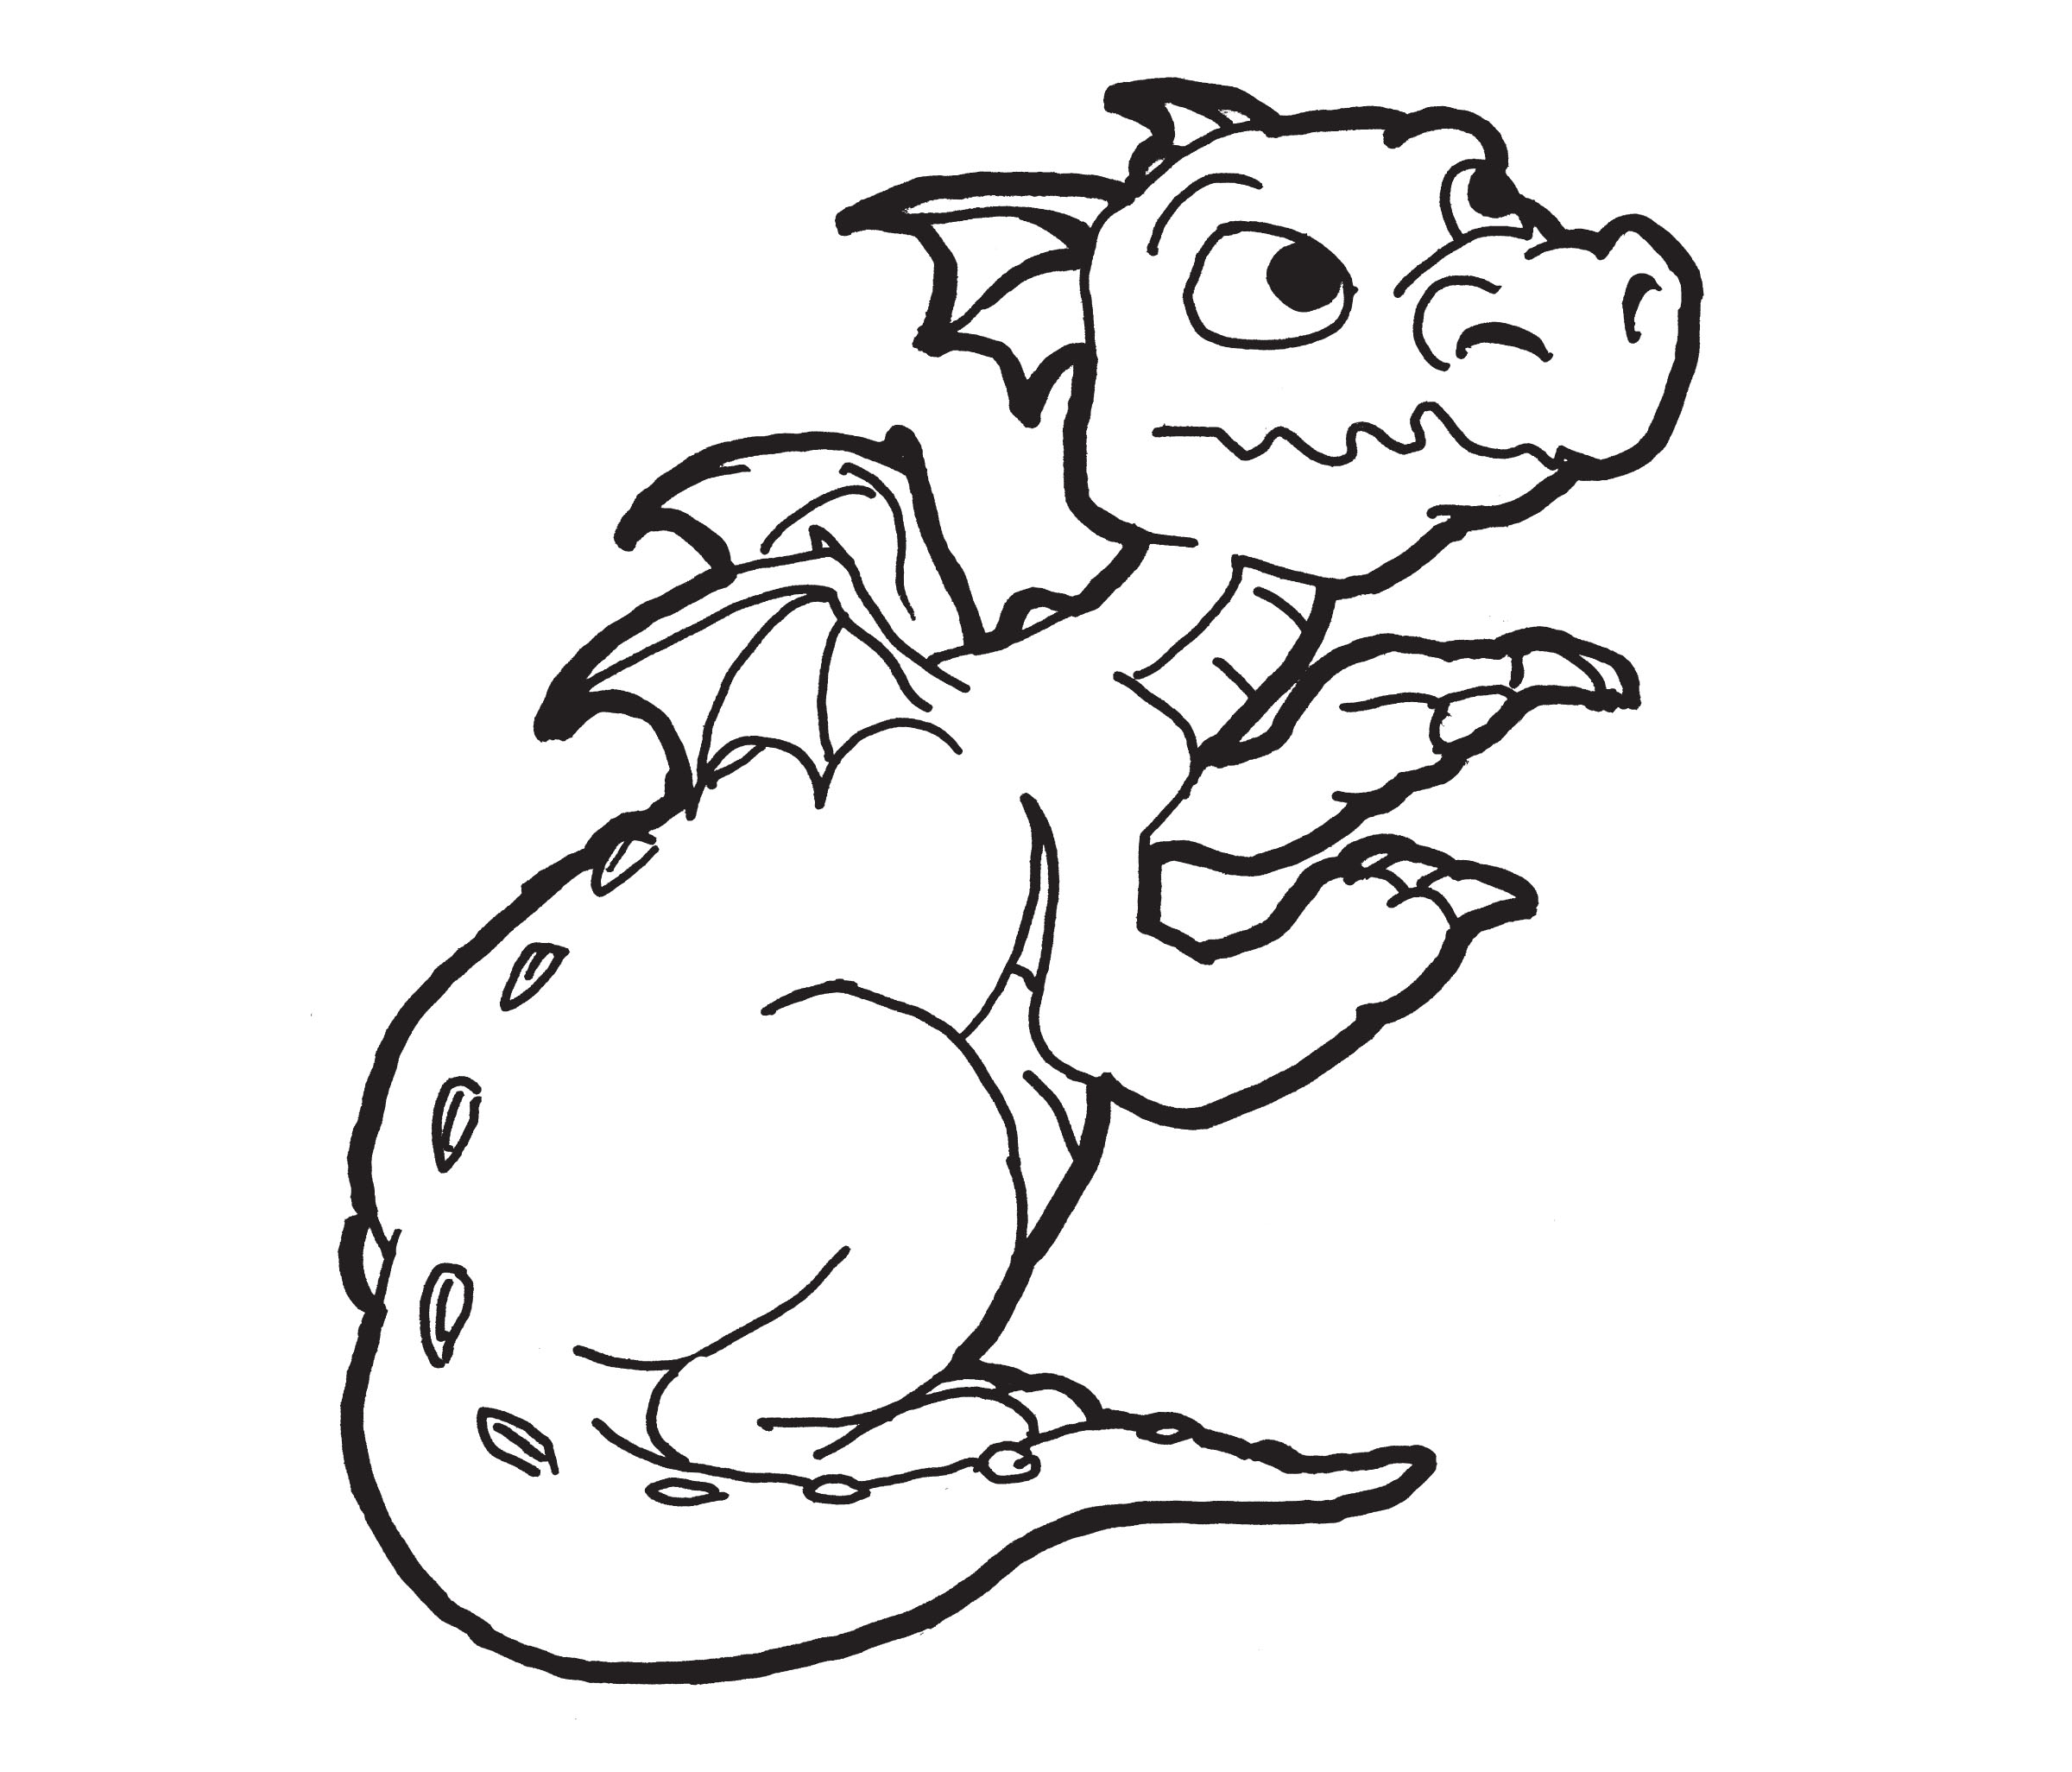 Coloring Pages For Kids Printable : Free printable dragon coloring pages for kids